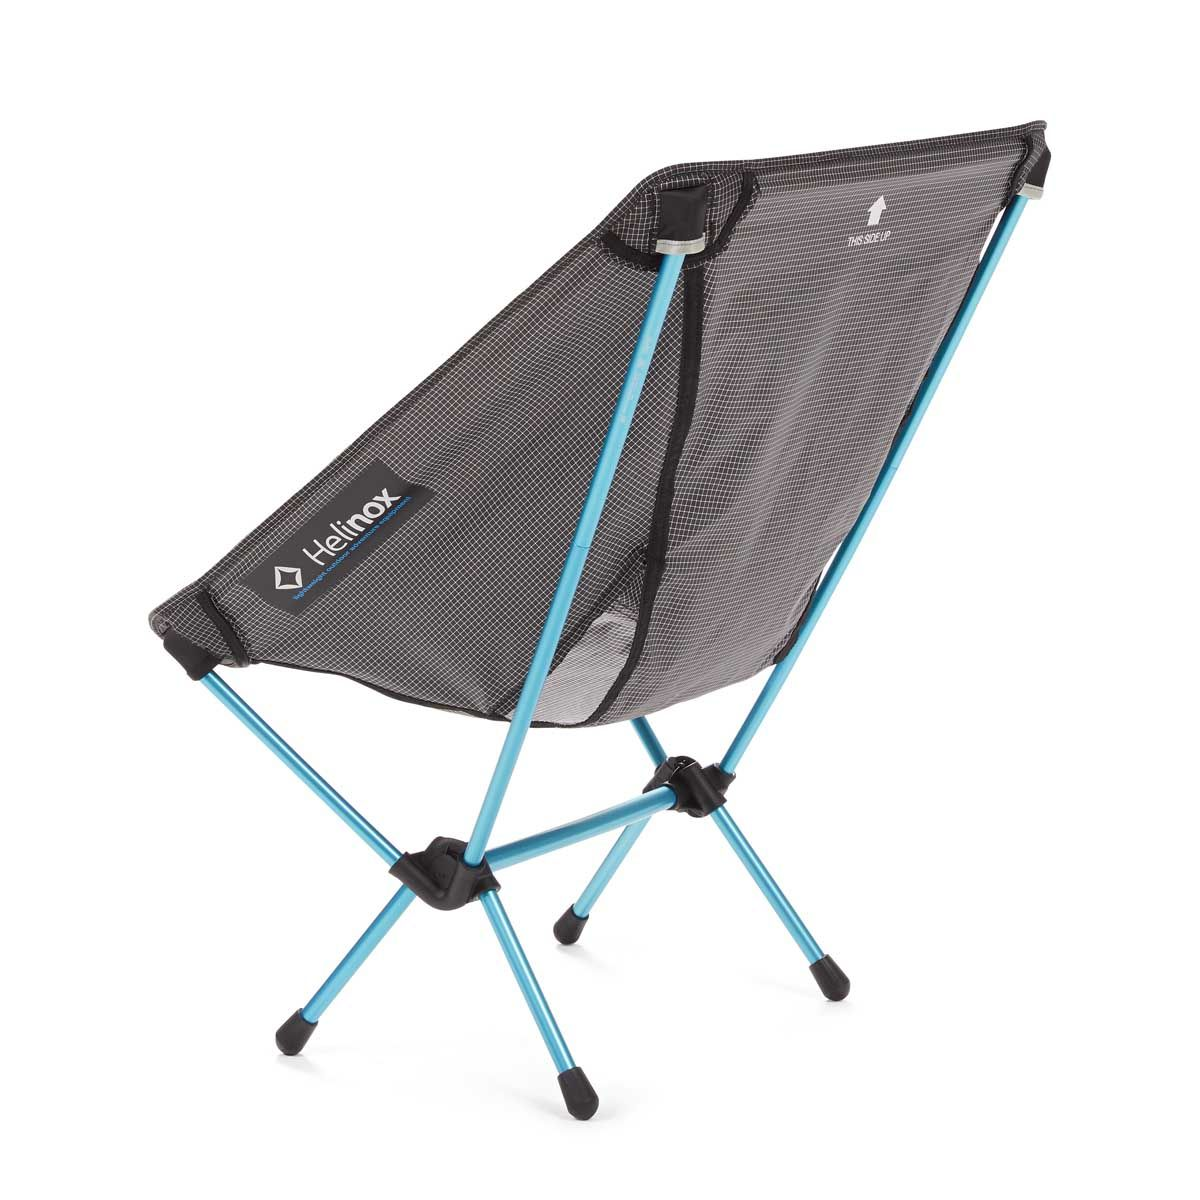 Chaise pliante voyage camping